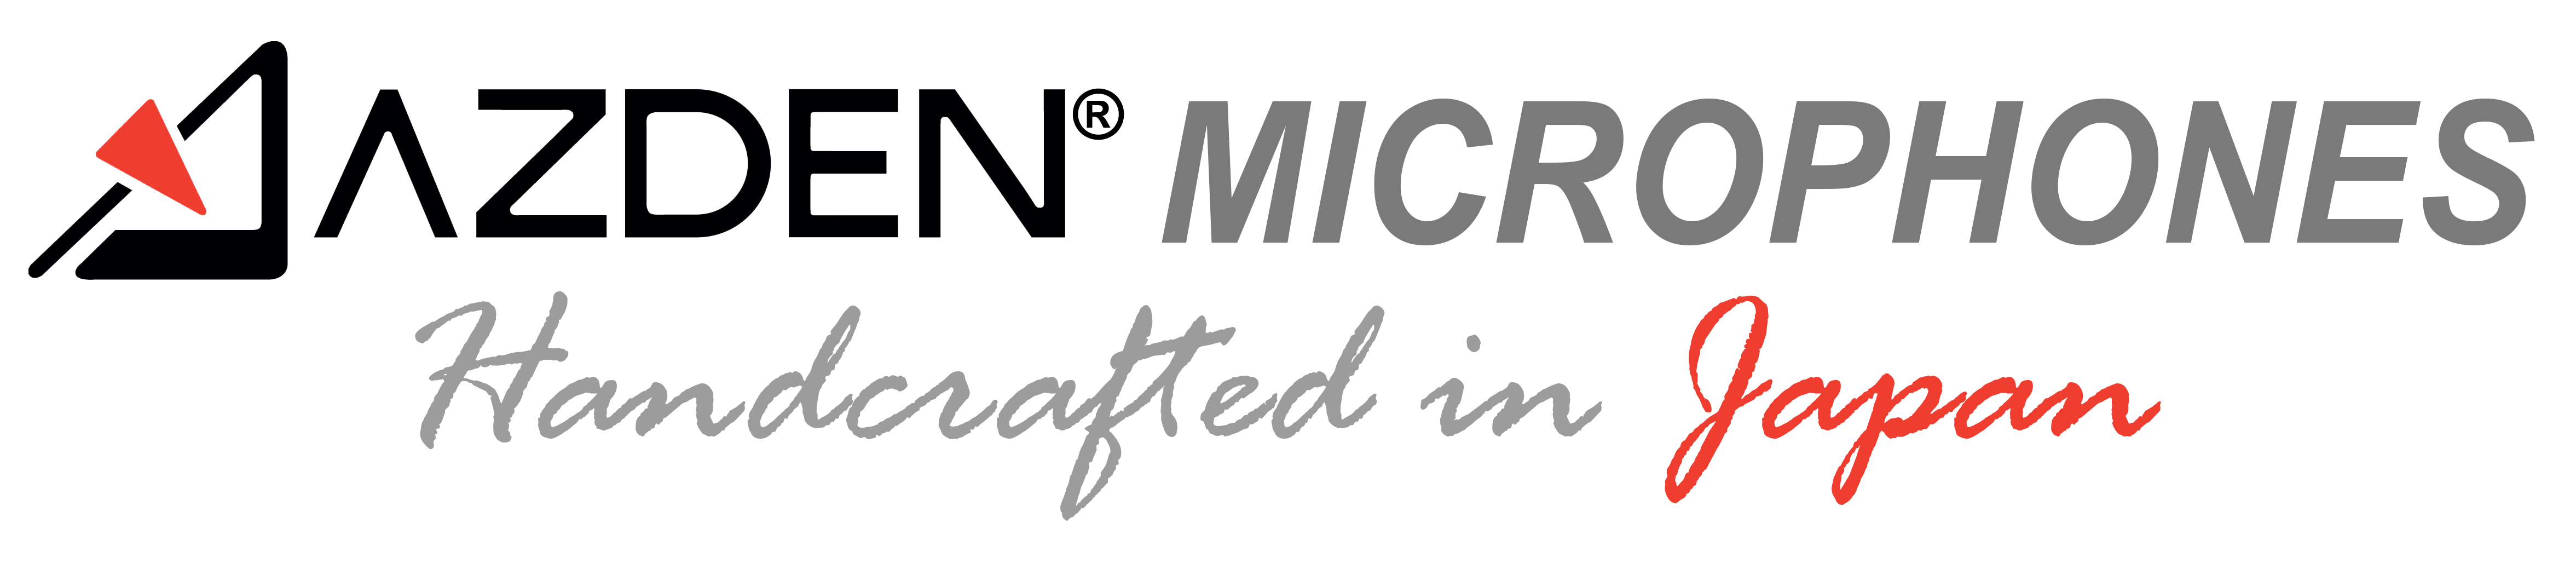 microphones-handcrafted.png